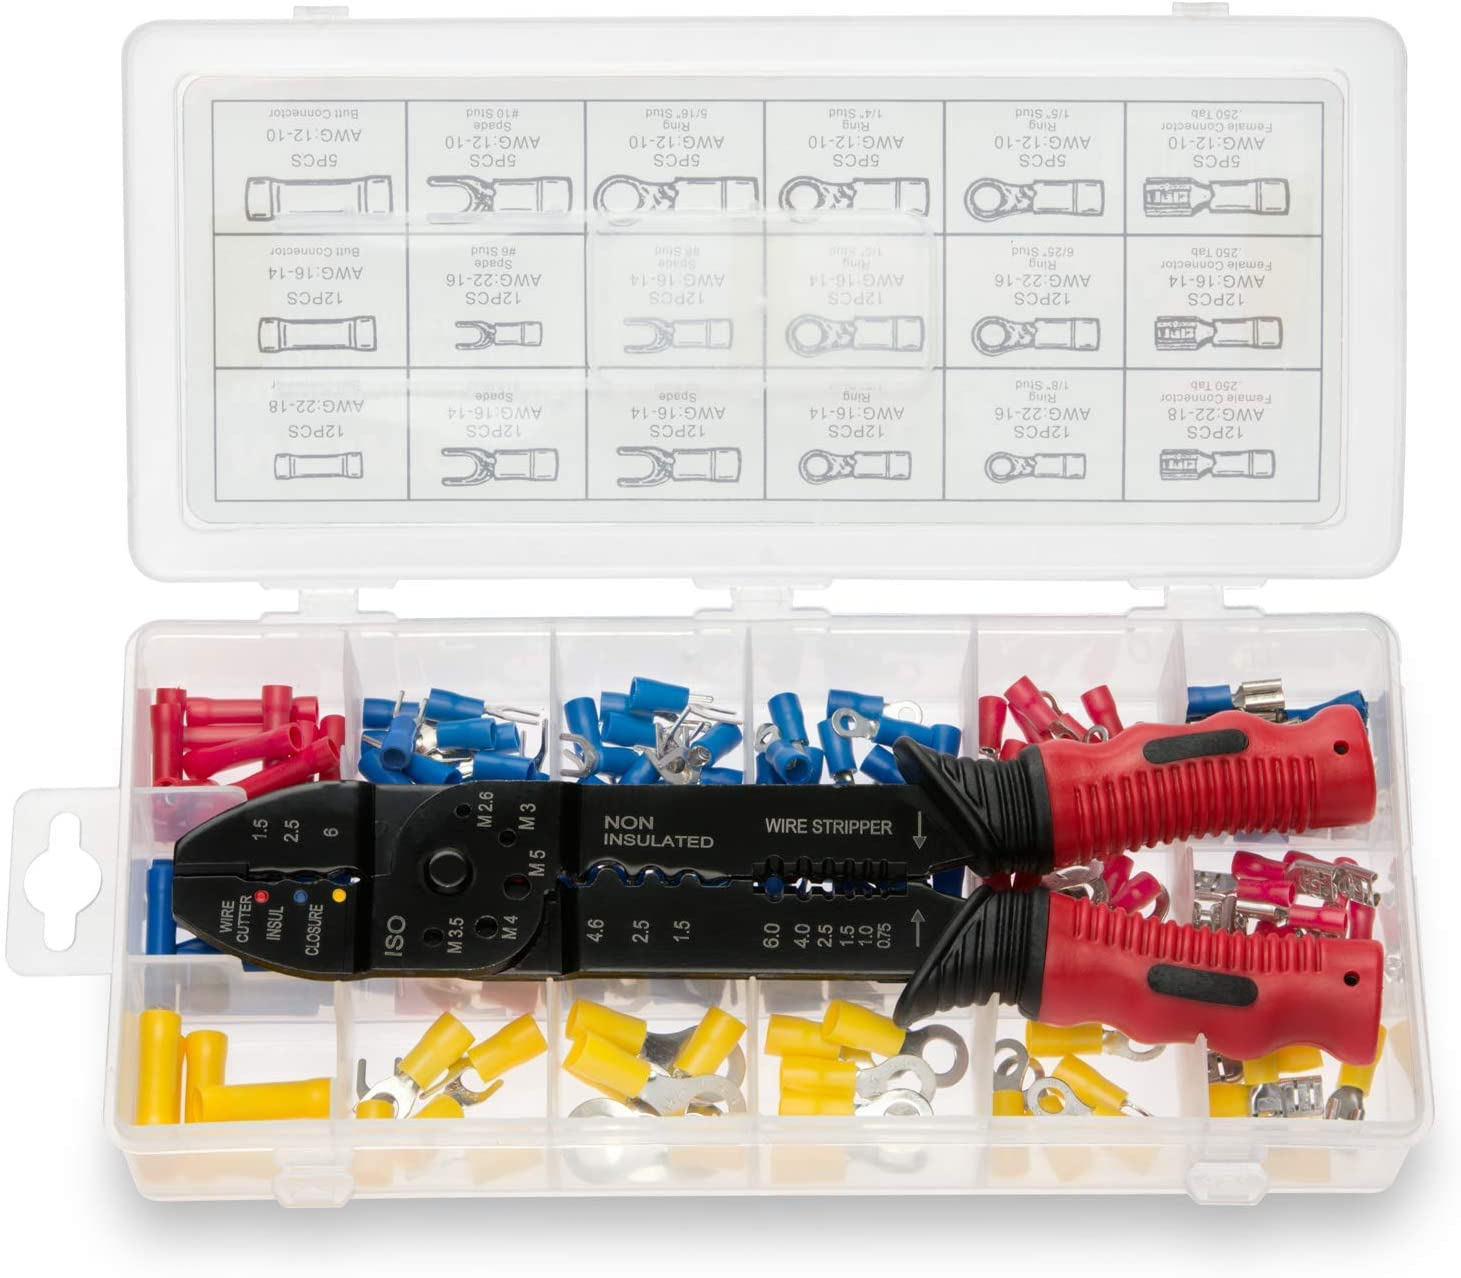 Neiko 50413A Insulated Wire Connectors and Assortment Nashville-Davidson Mall Indianapolis Mall Terminals